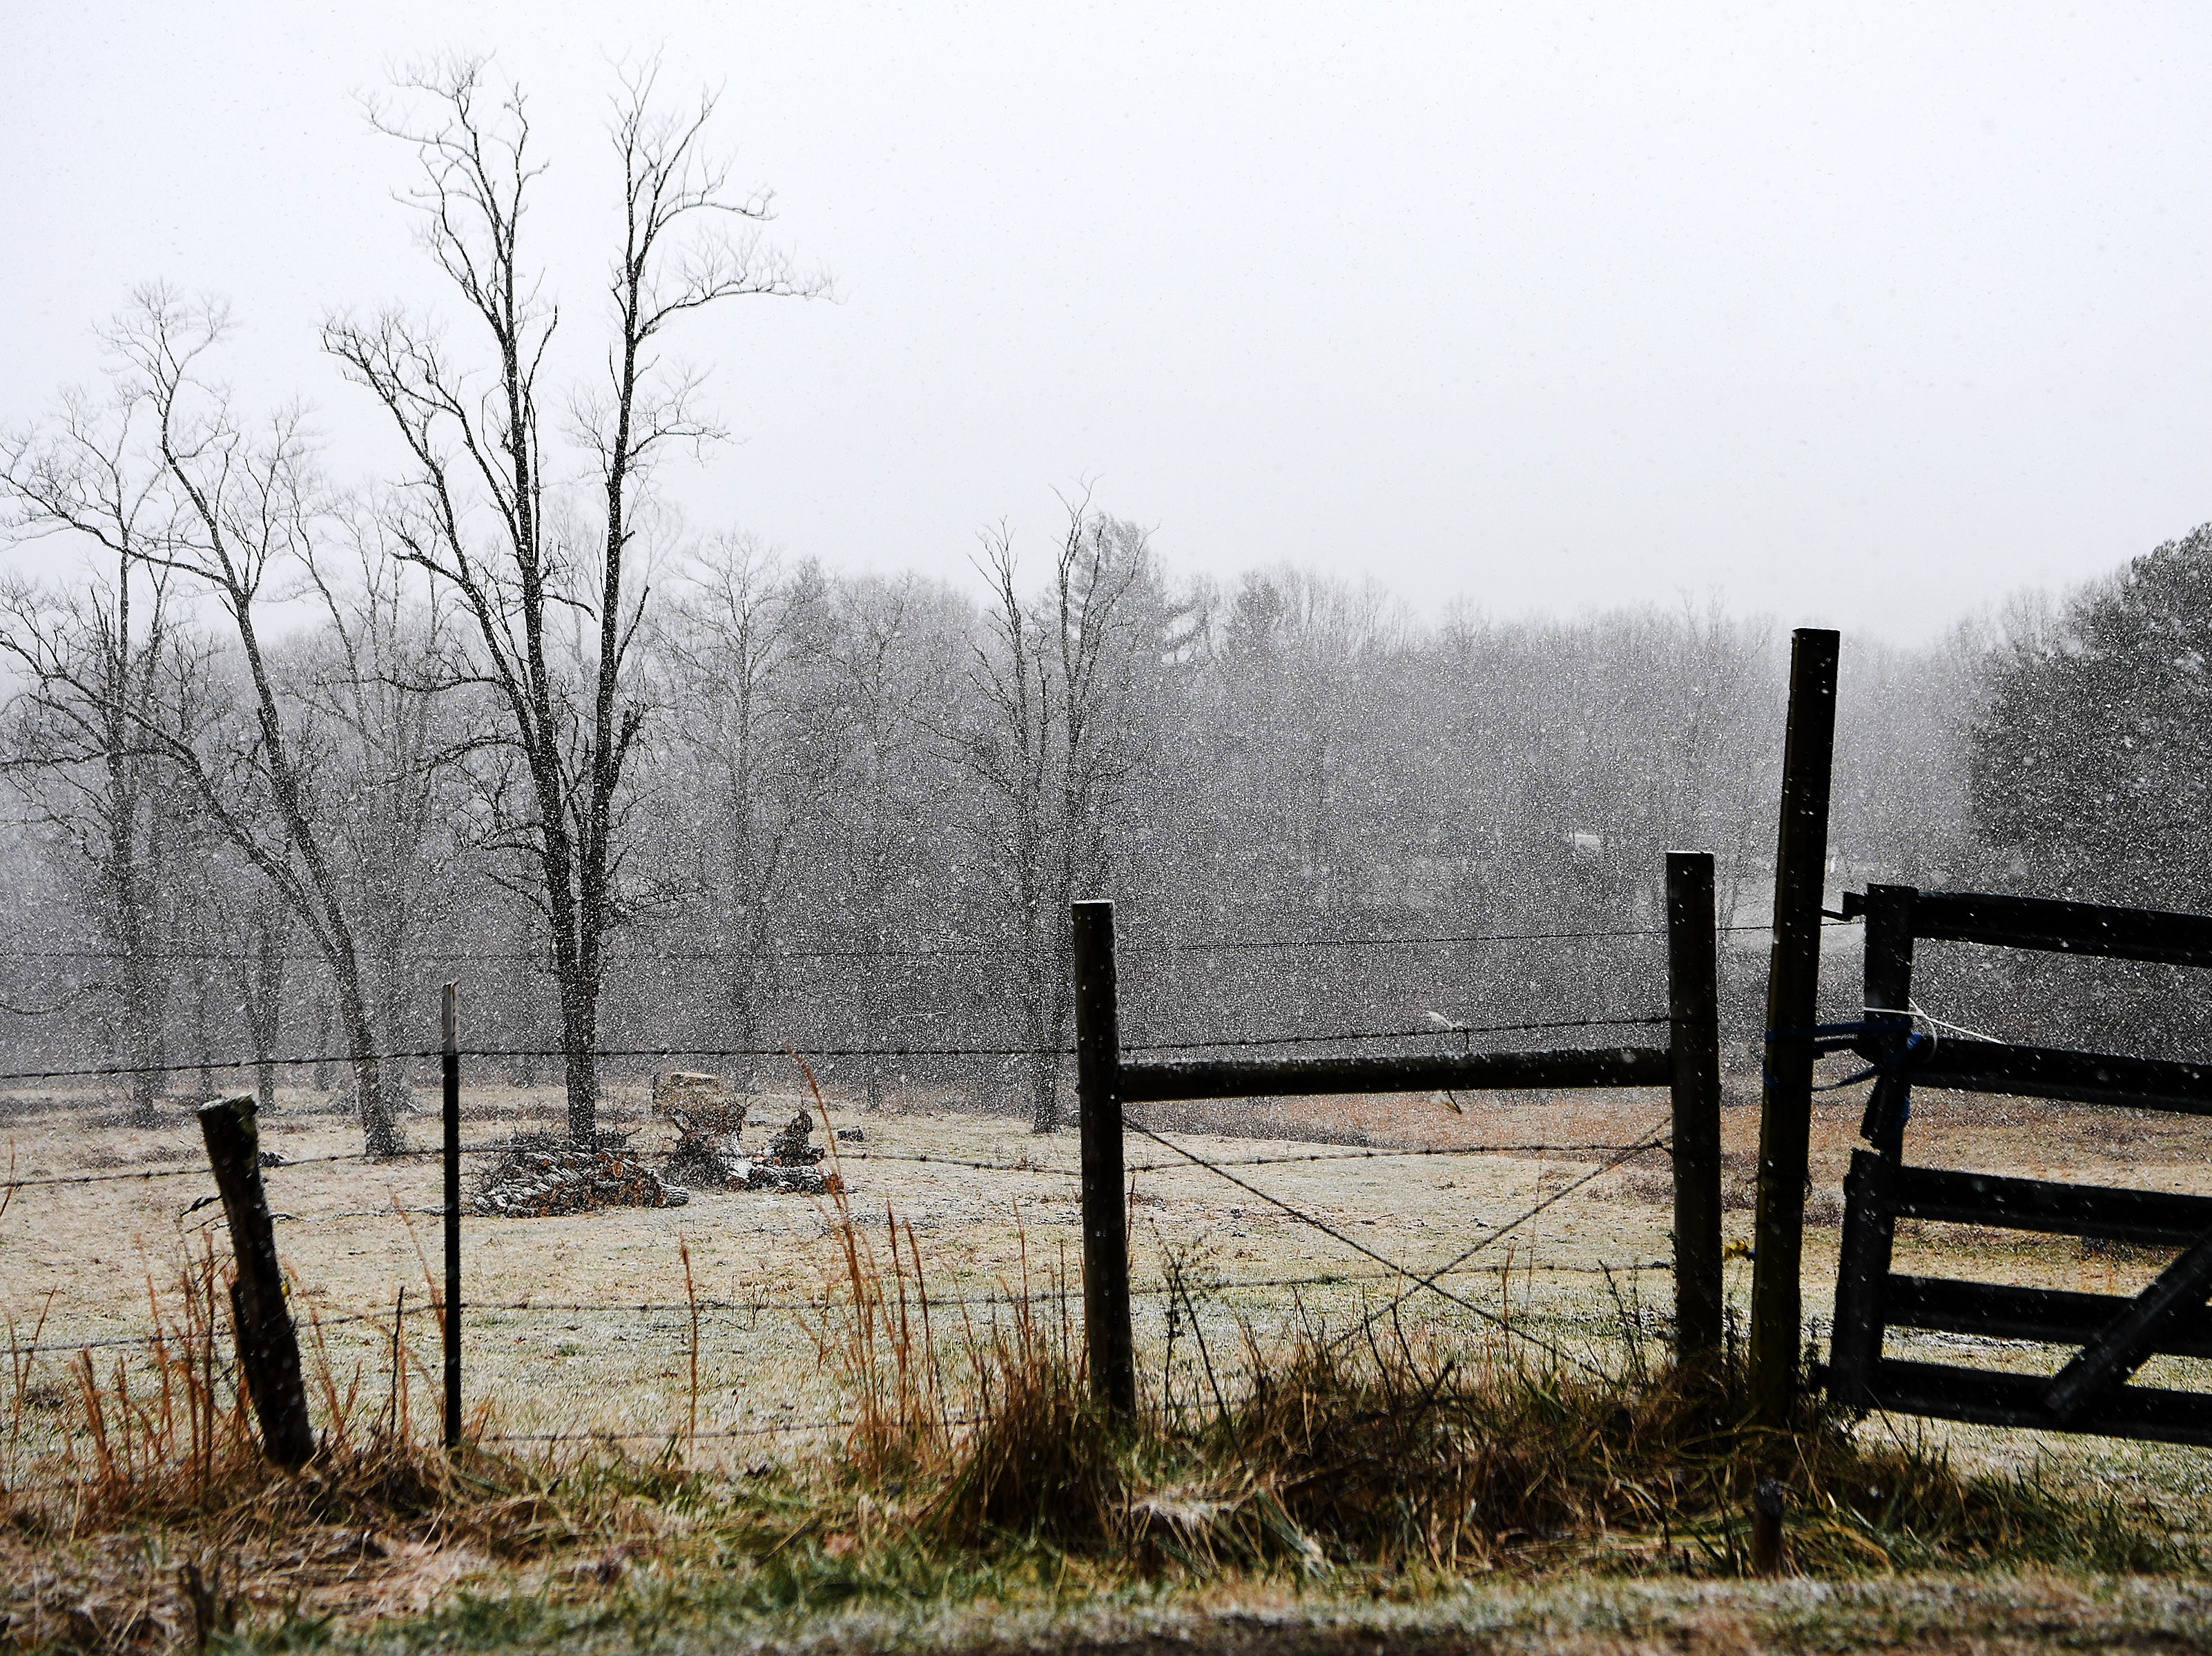 Snow falls on a field in East Asheville on Jan. 29, 2019. Up to three inches of snow with icy roads are forecasted.